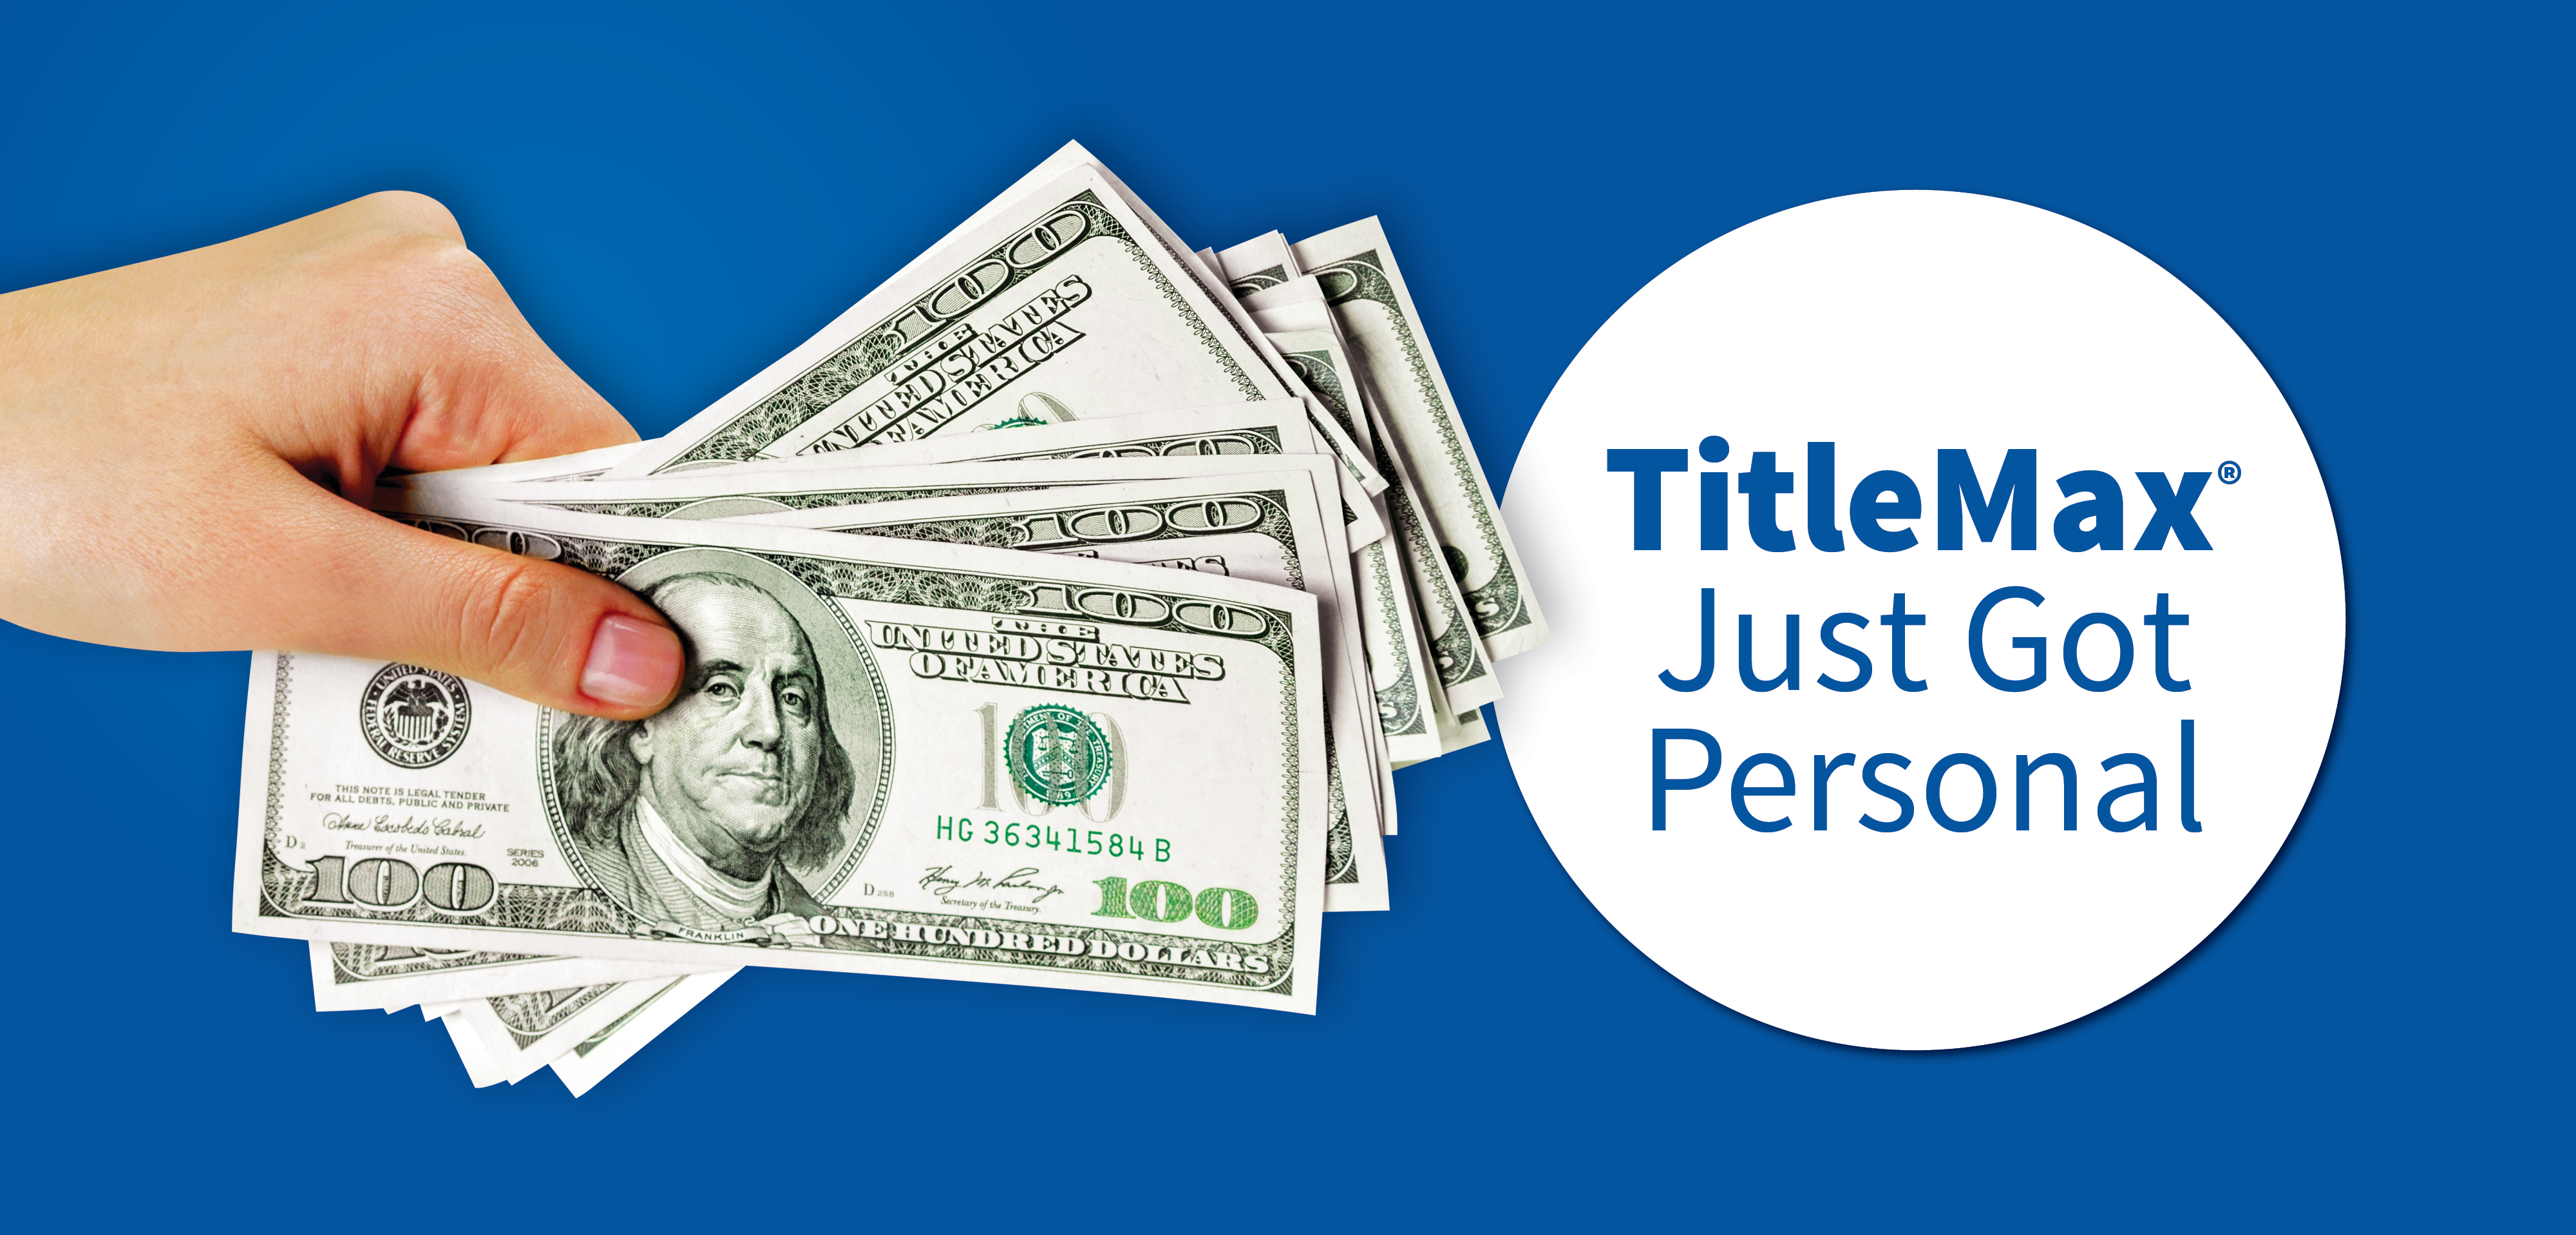 TitleMax Gets Personal with Personal Loans!